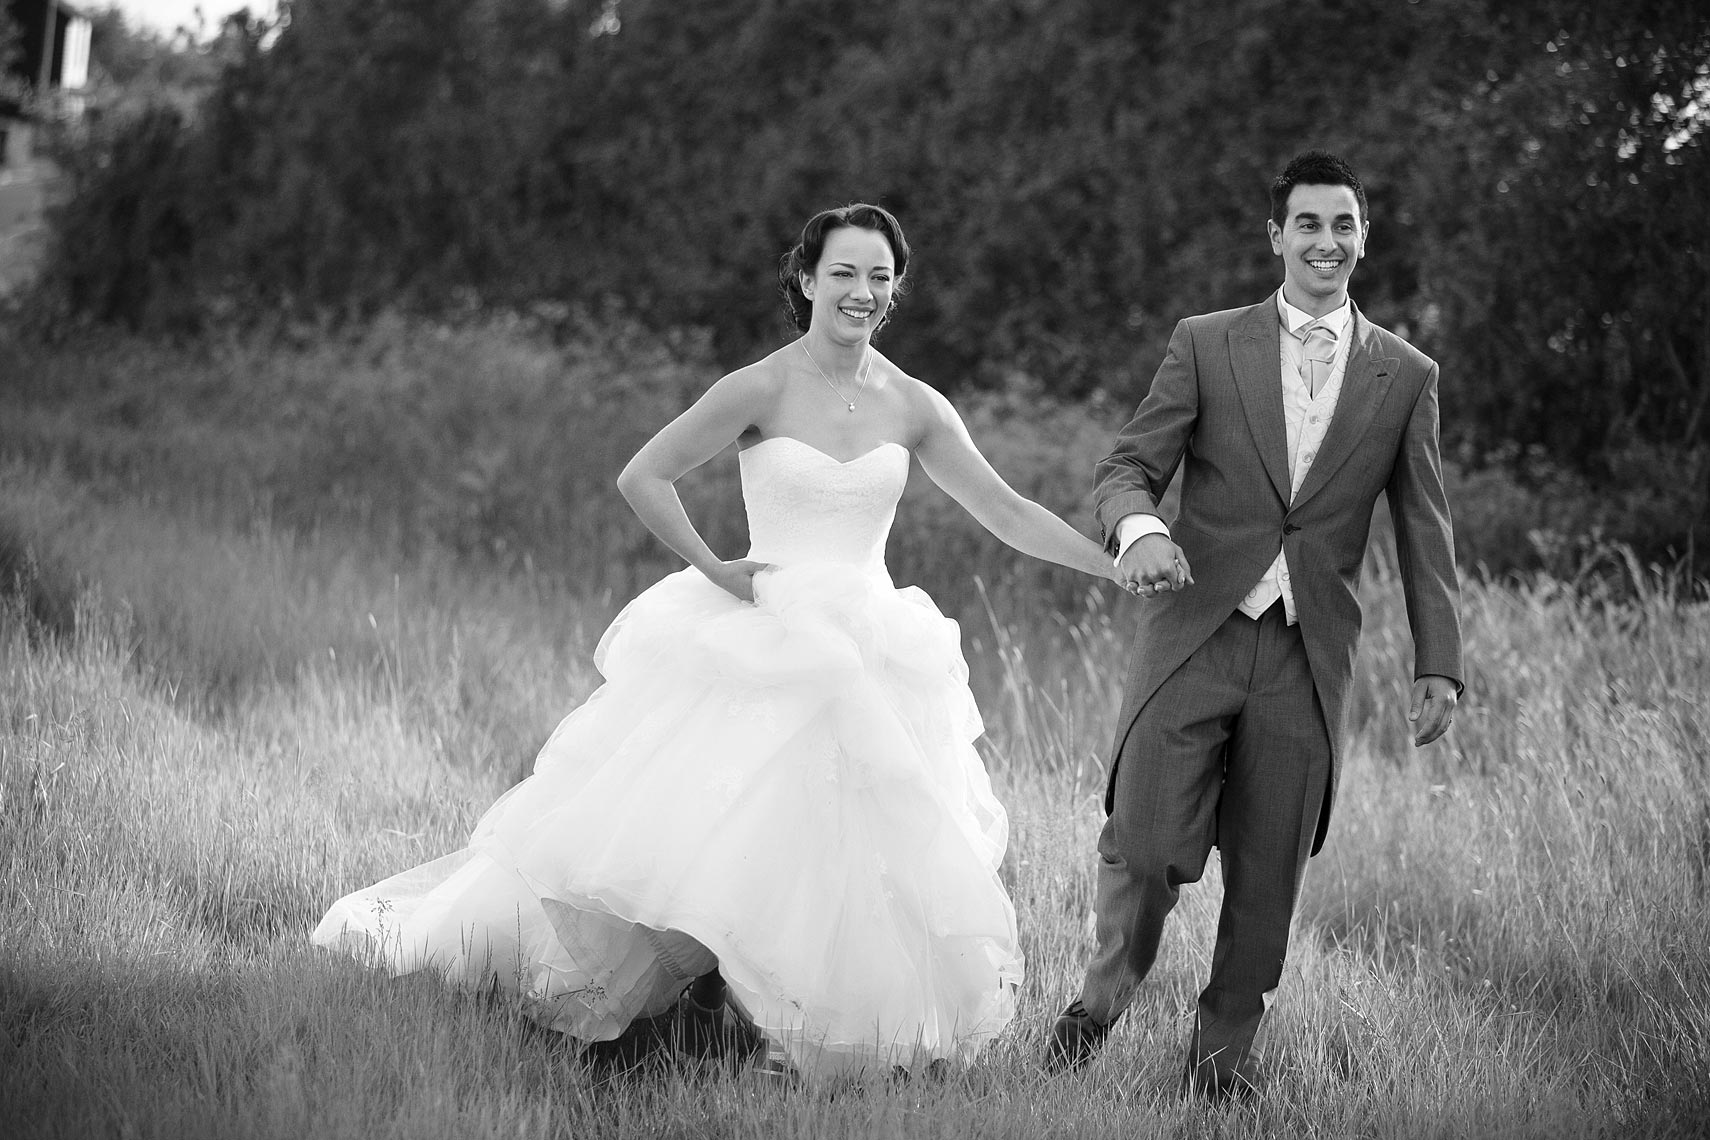 natural-wedding-photograph-Essex.jpg